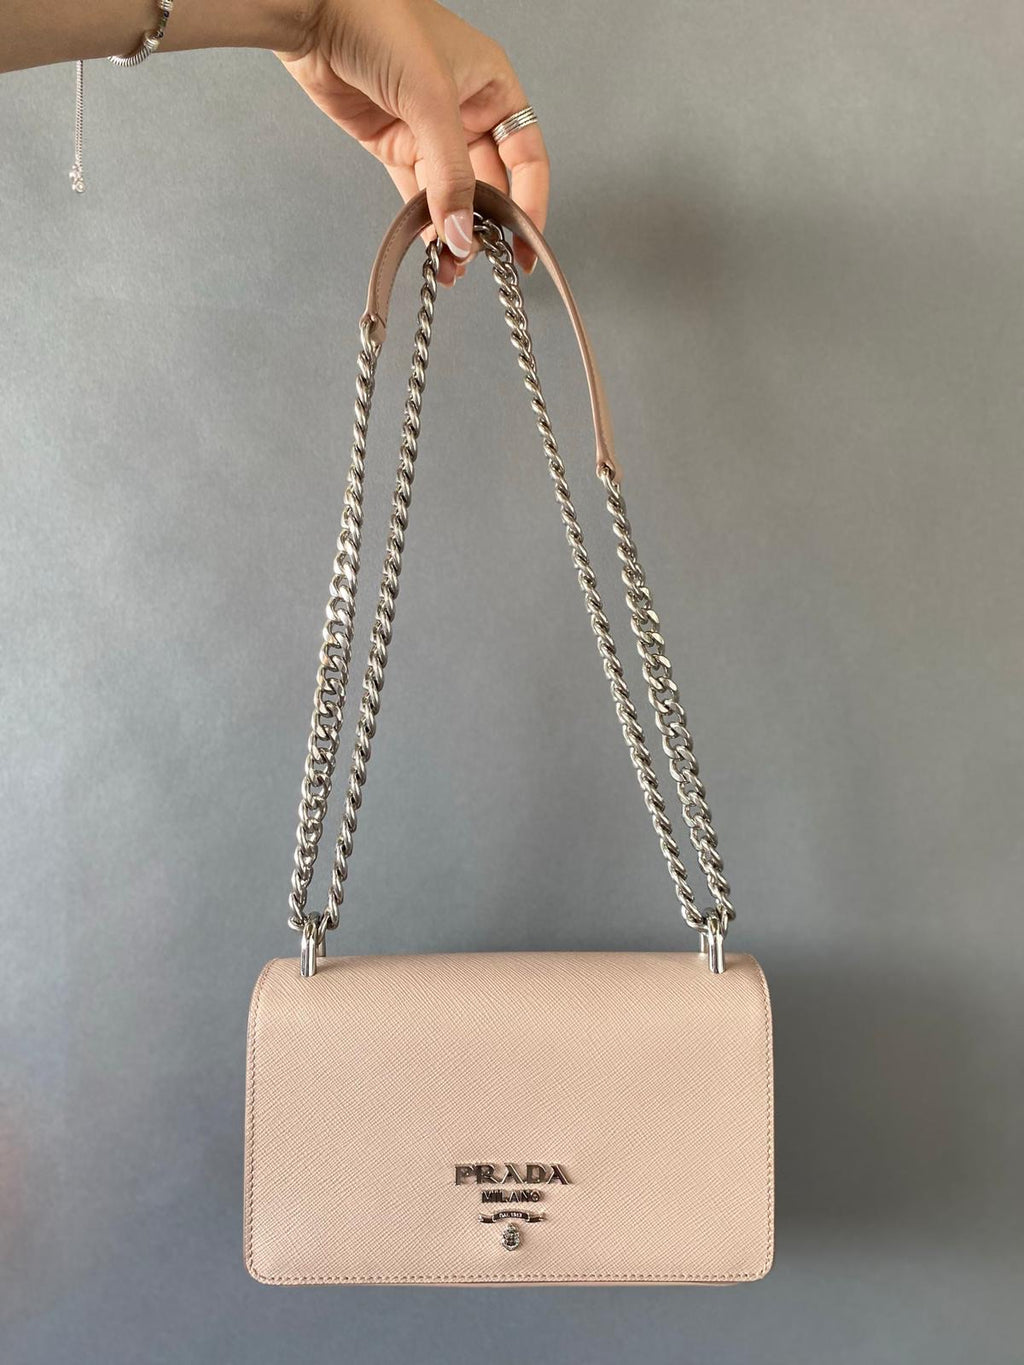 PRADA PATTINA CROSSBODY